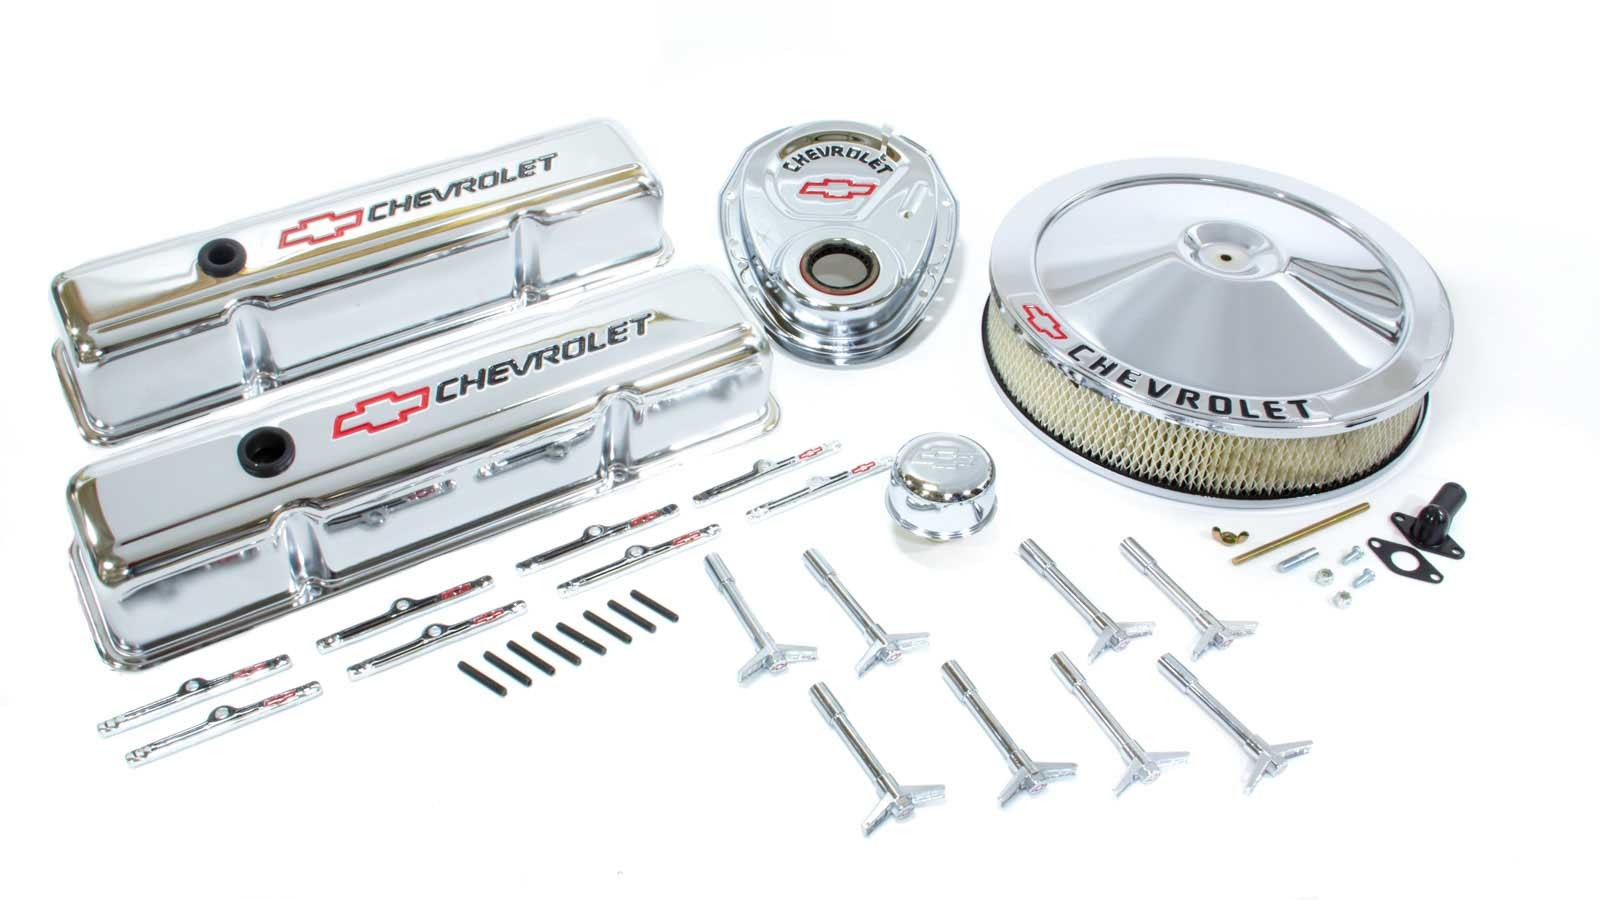 Proform 141-900 Engine Dress Up Kit, Air Cleaner / Tall Valve Covers / Breather / Hardware / Timing Cover, Chevy Logo, Steel, Chrome, Small Block Chevy, Kit